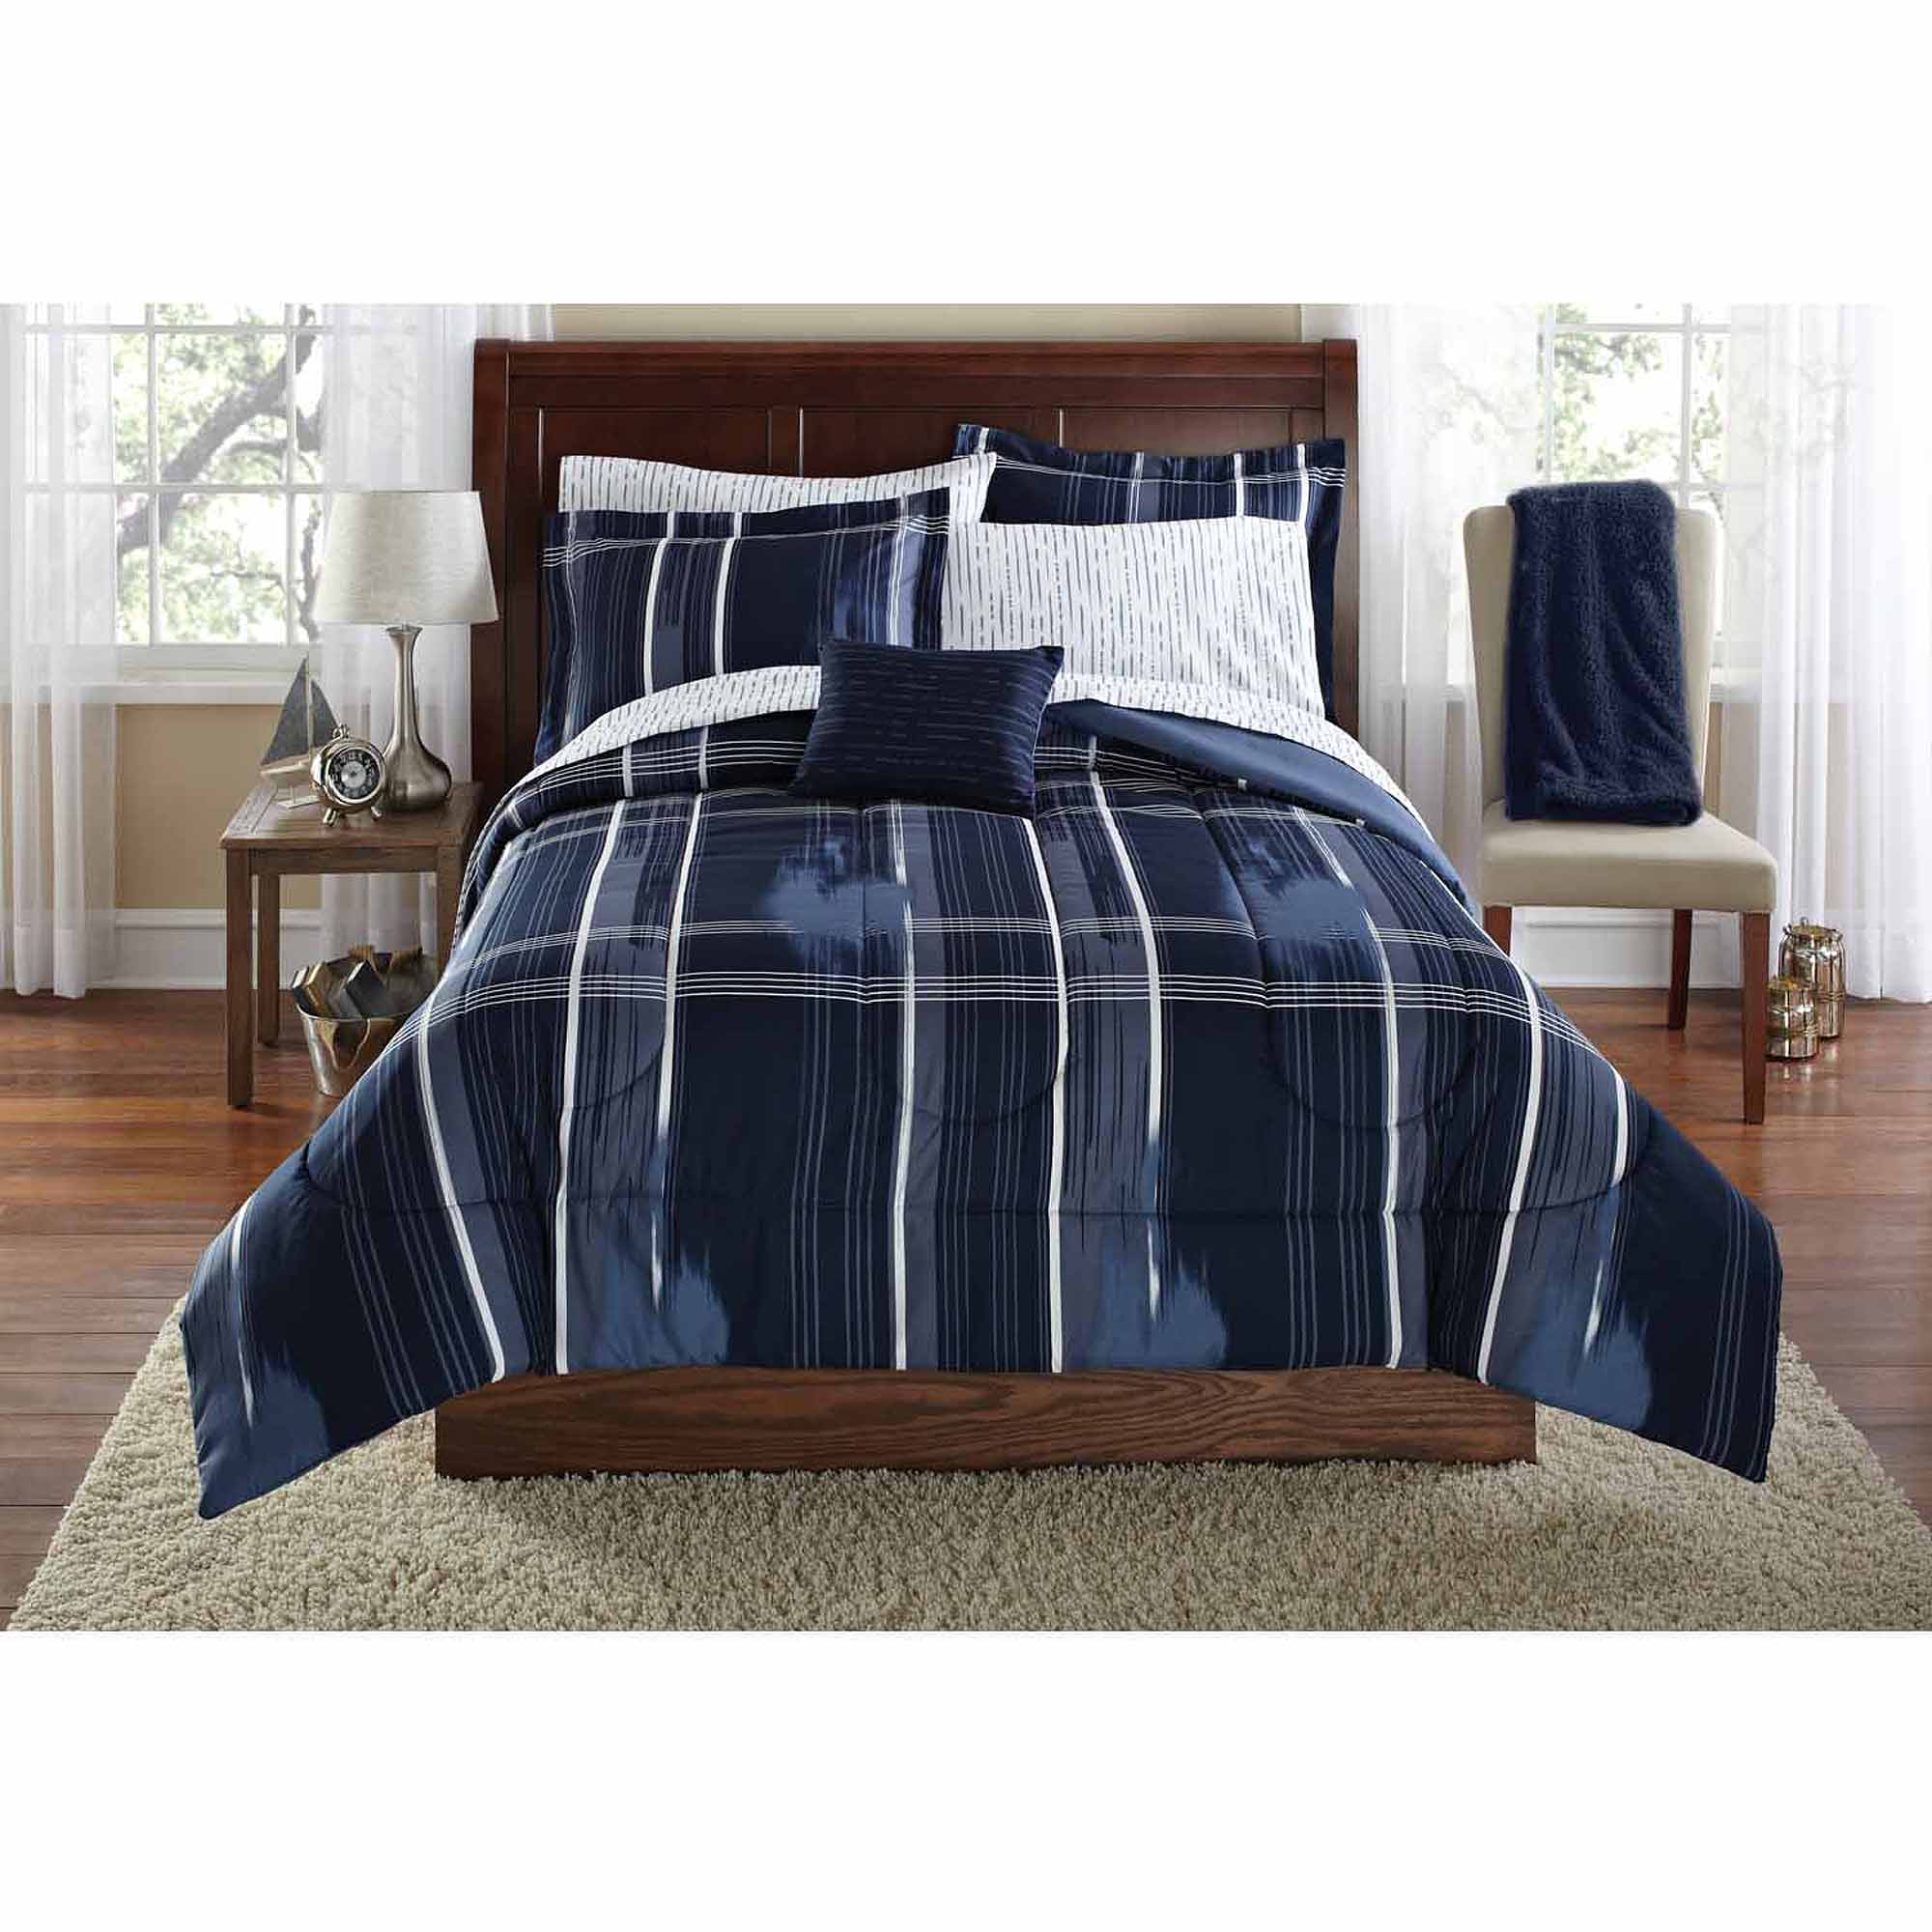 Mainstays Navy Plaid Bed in a Bag Coordinated Bedding Set